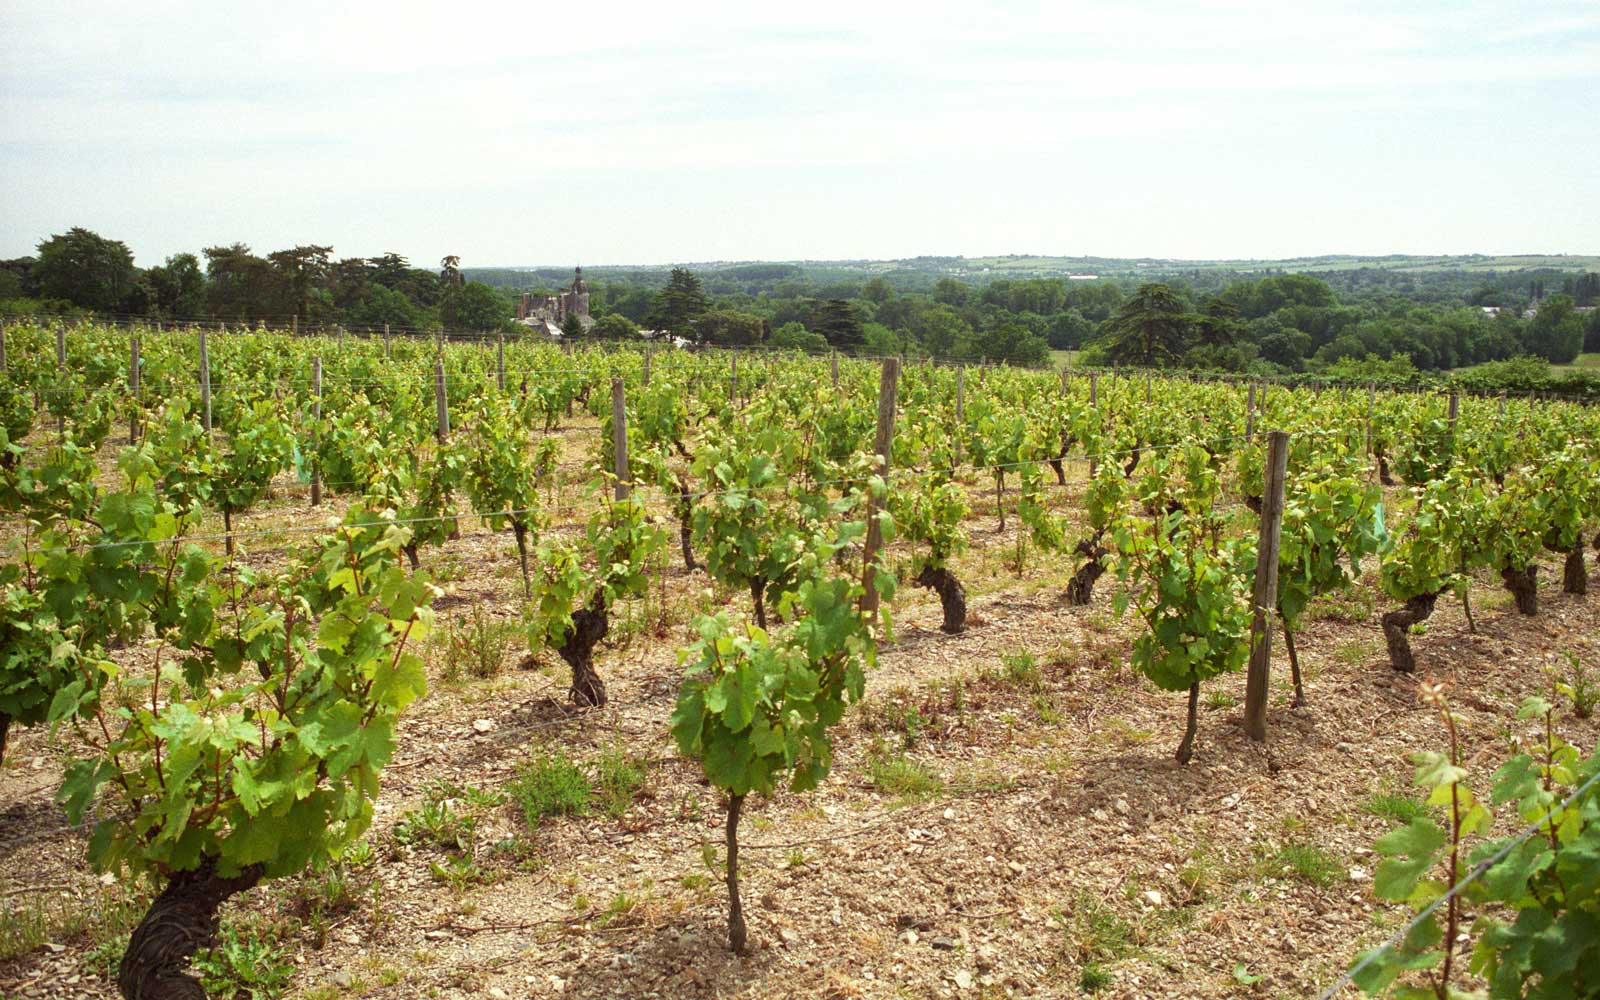 Vineyard. Domaine du Closel, Savennieres, Loire, France